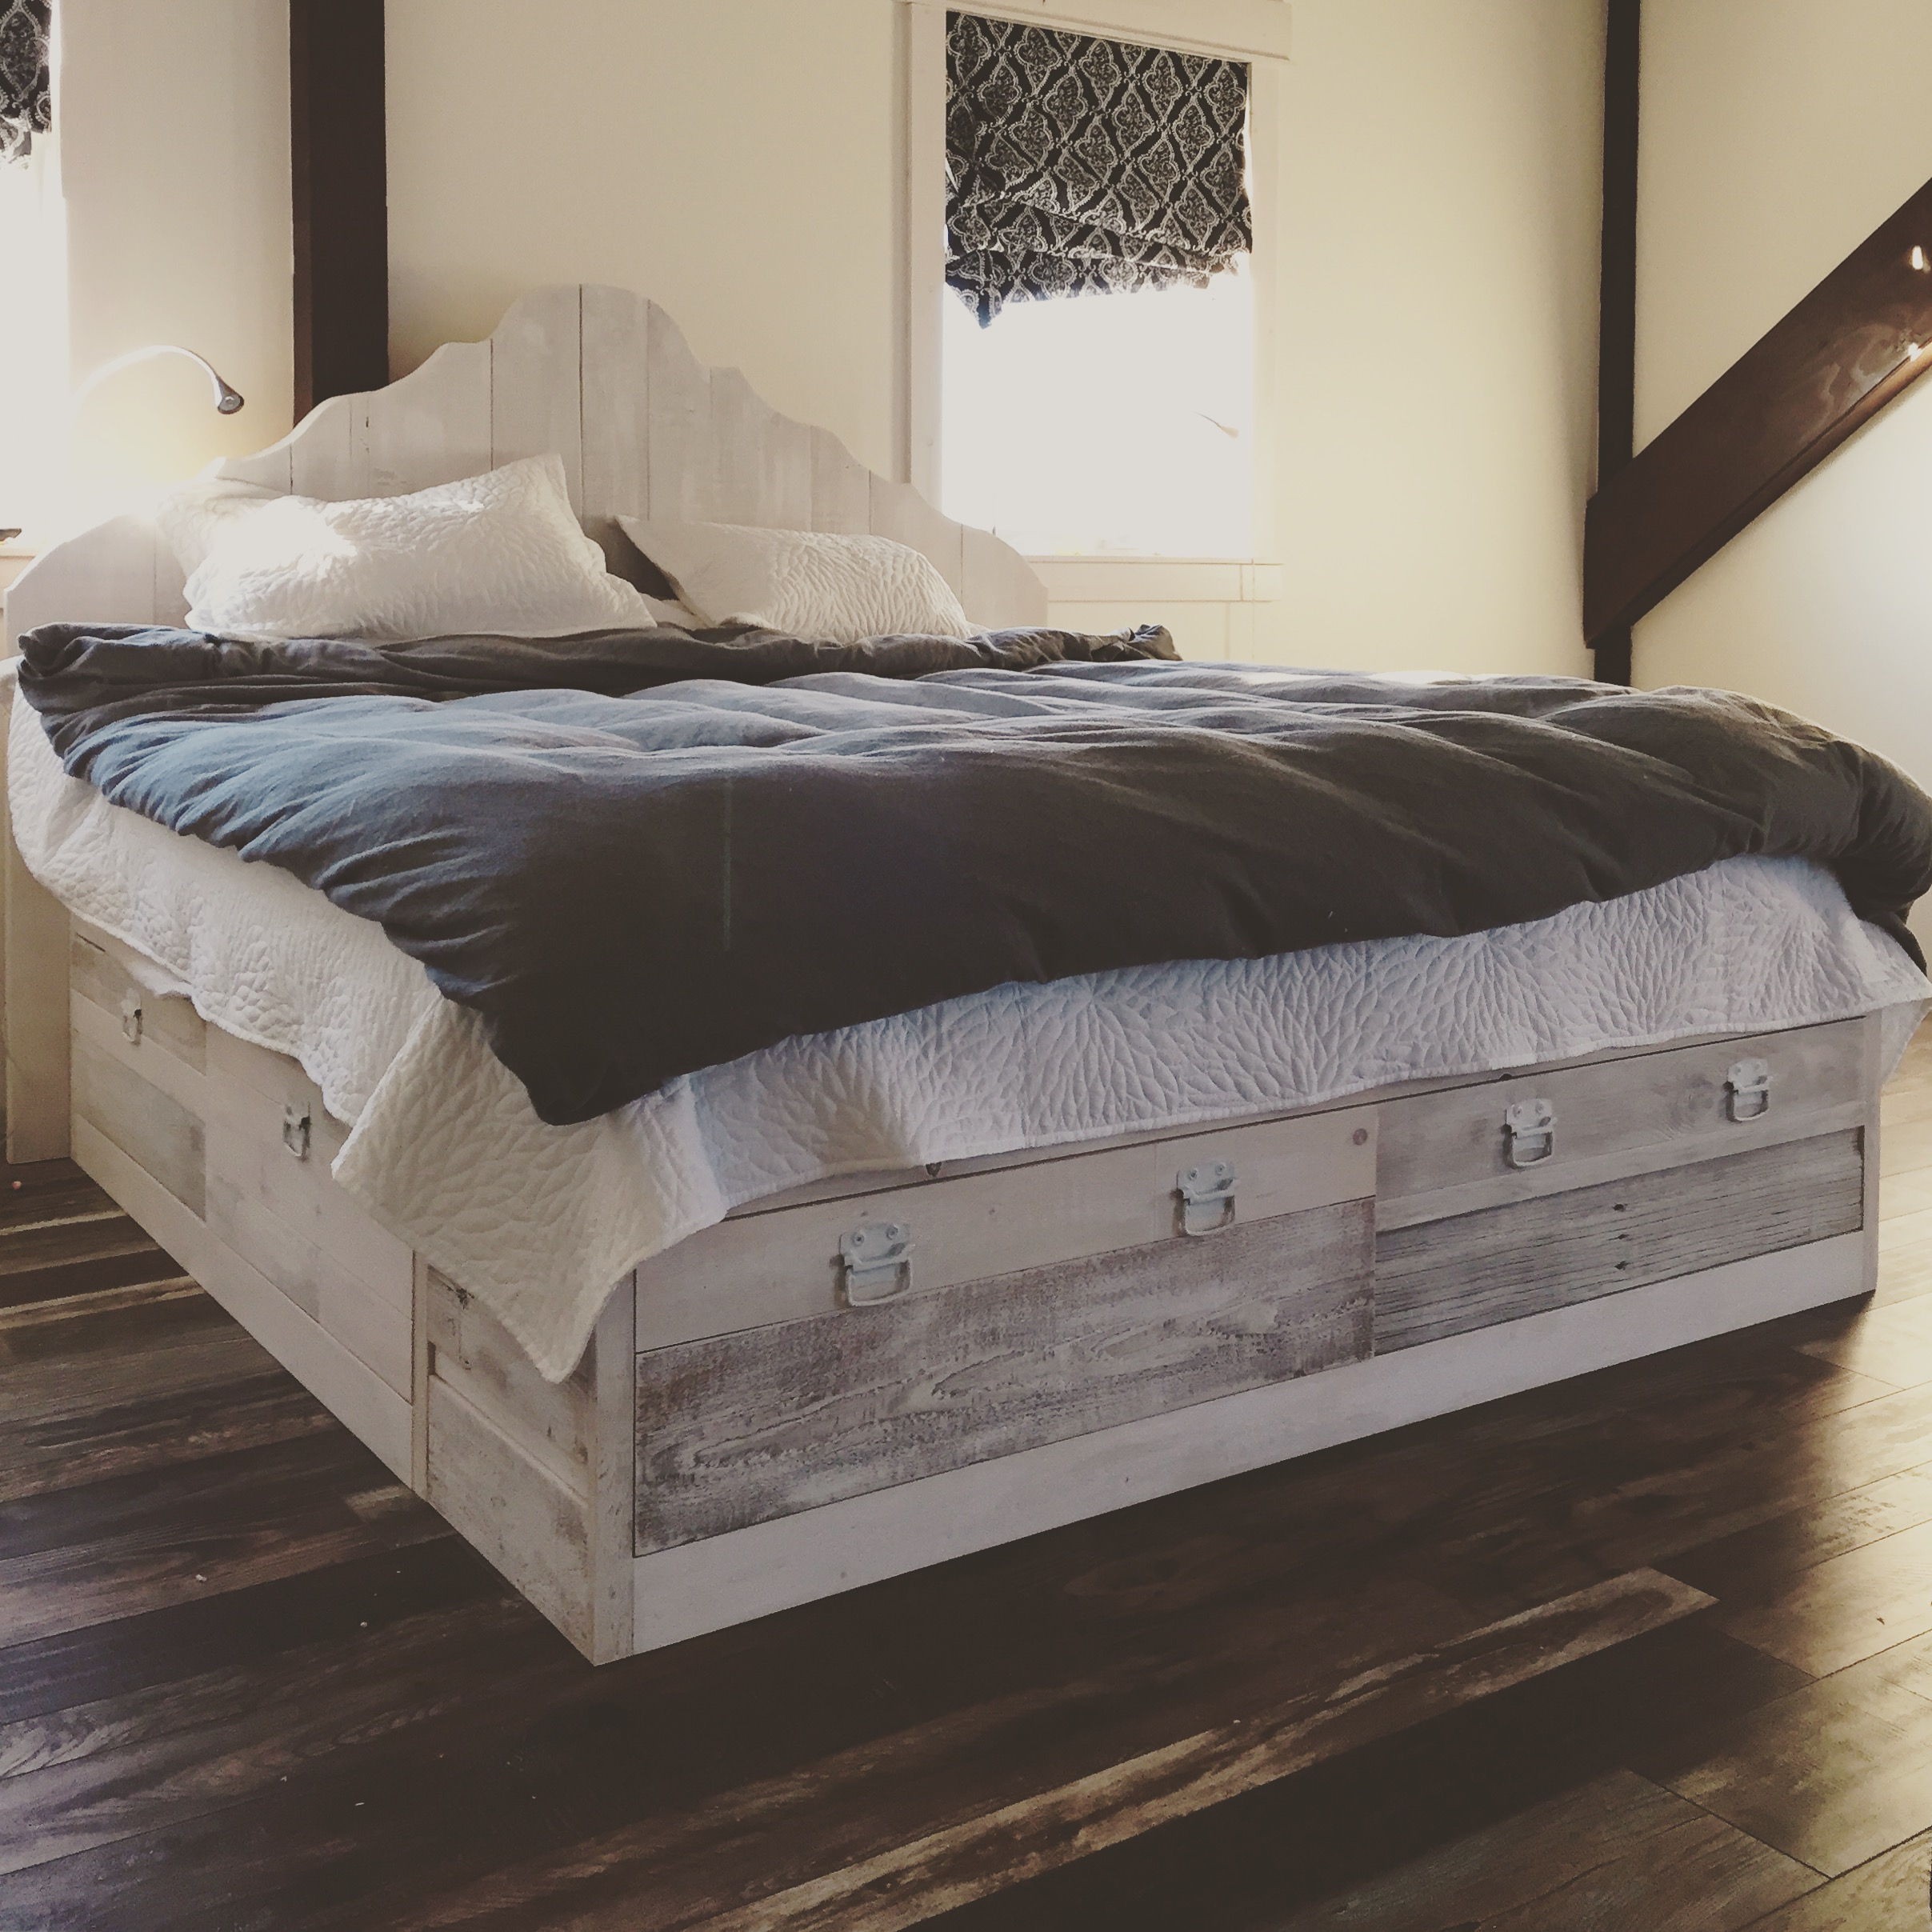 Ana White Our Scrap Wood Storage Bed Diy Projects